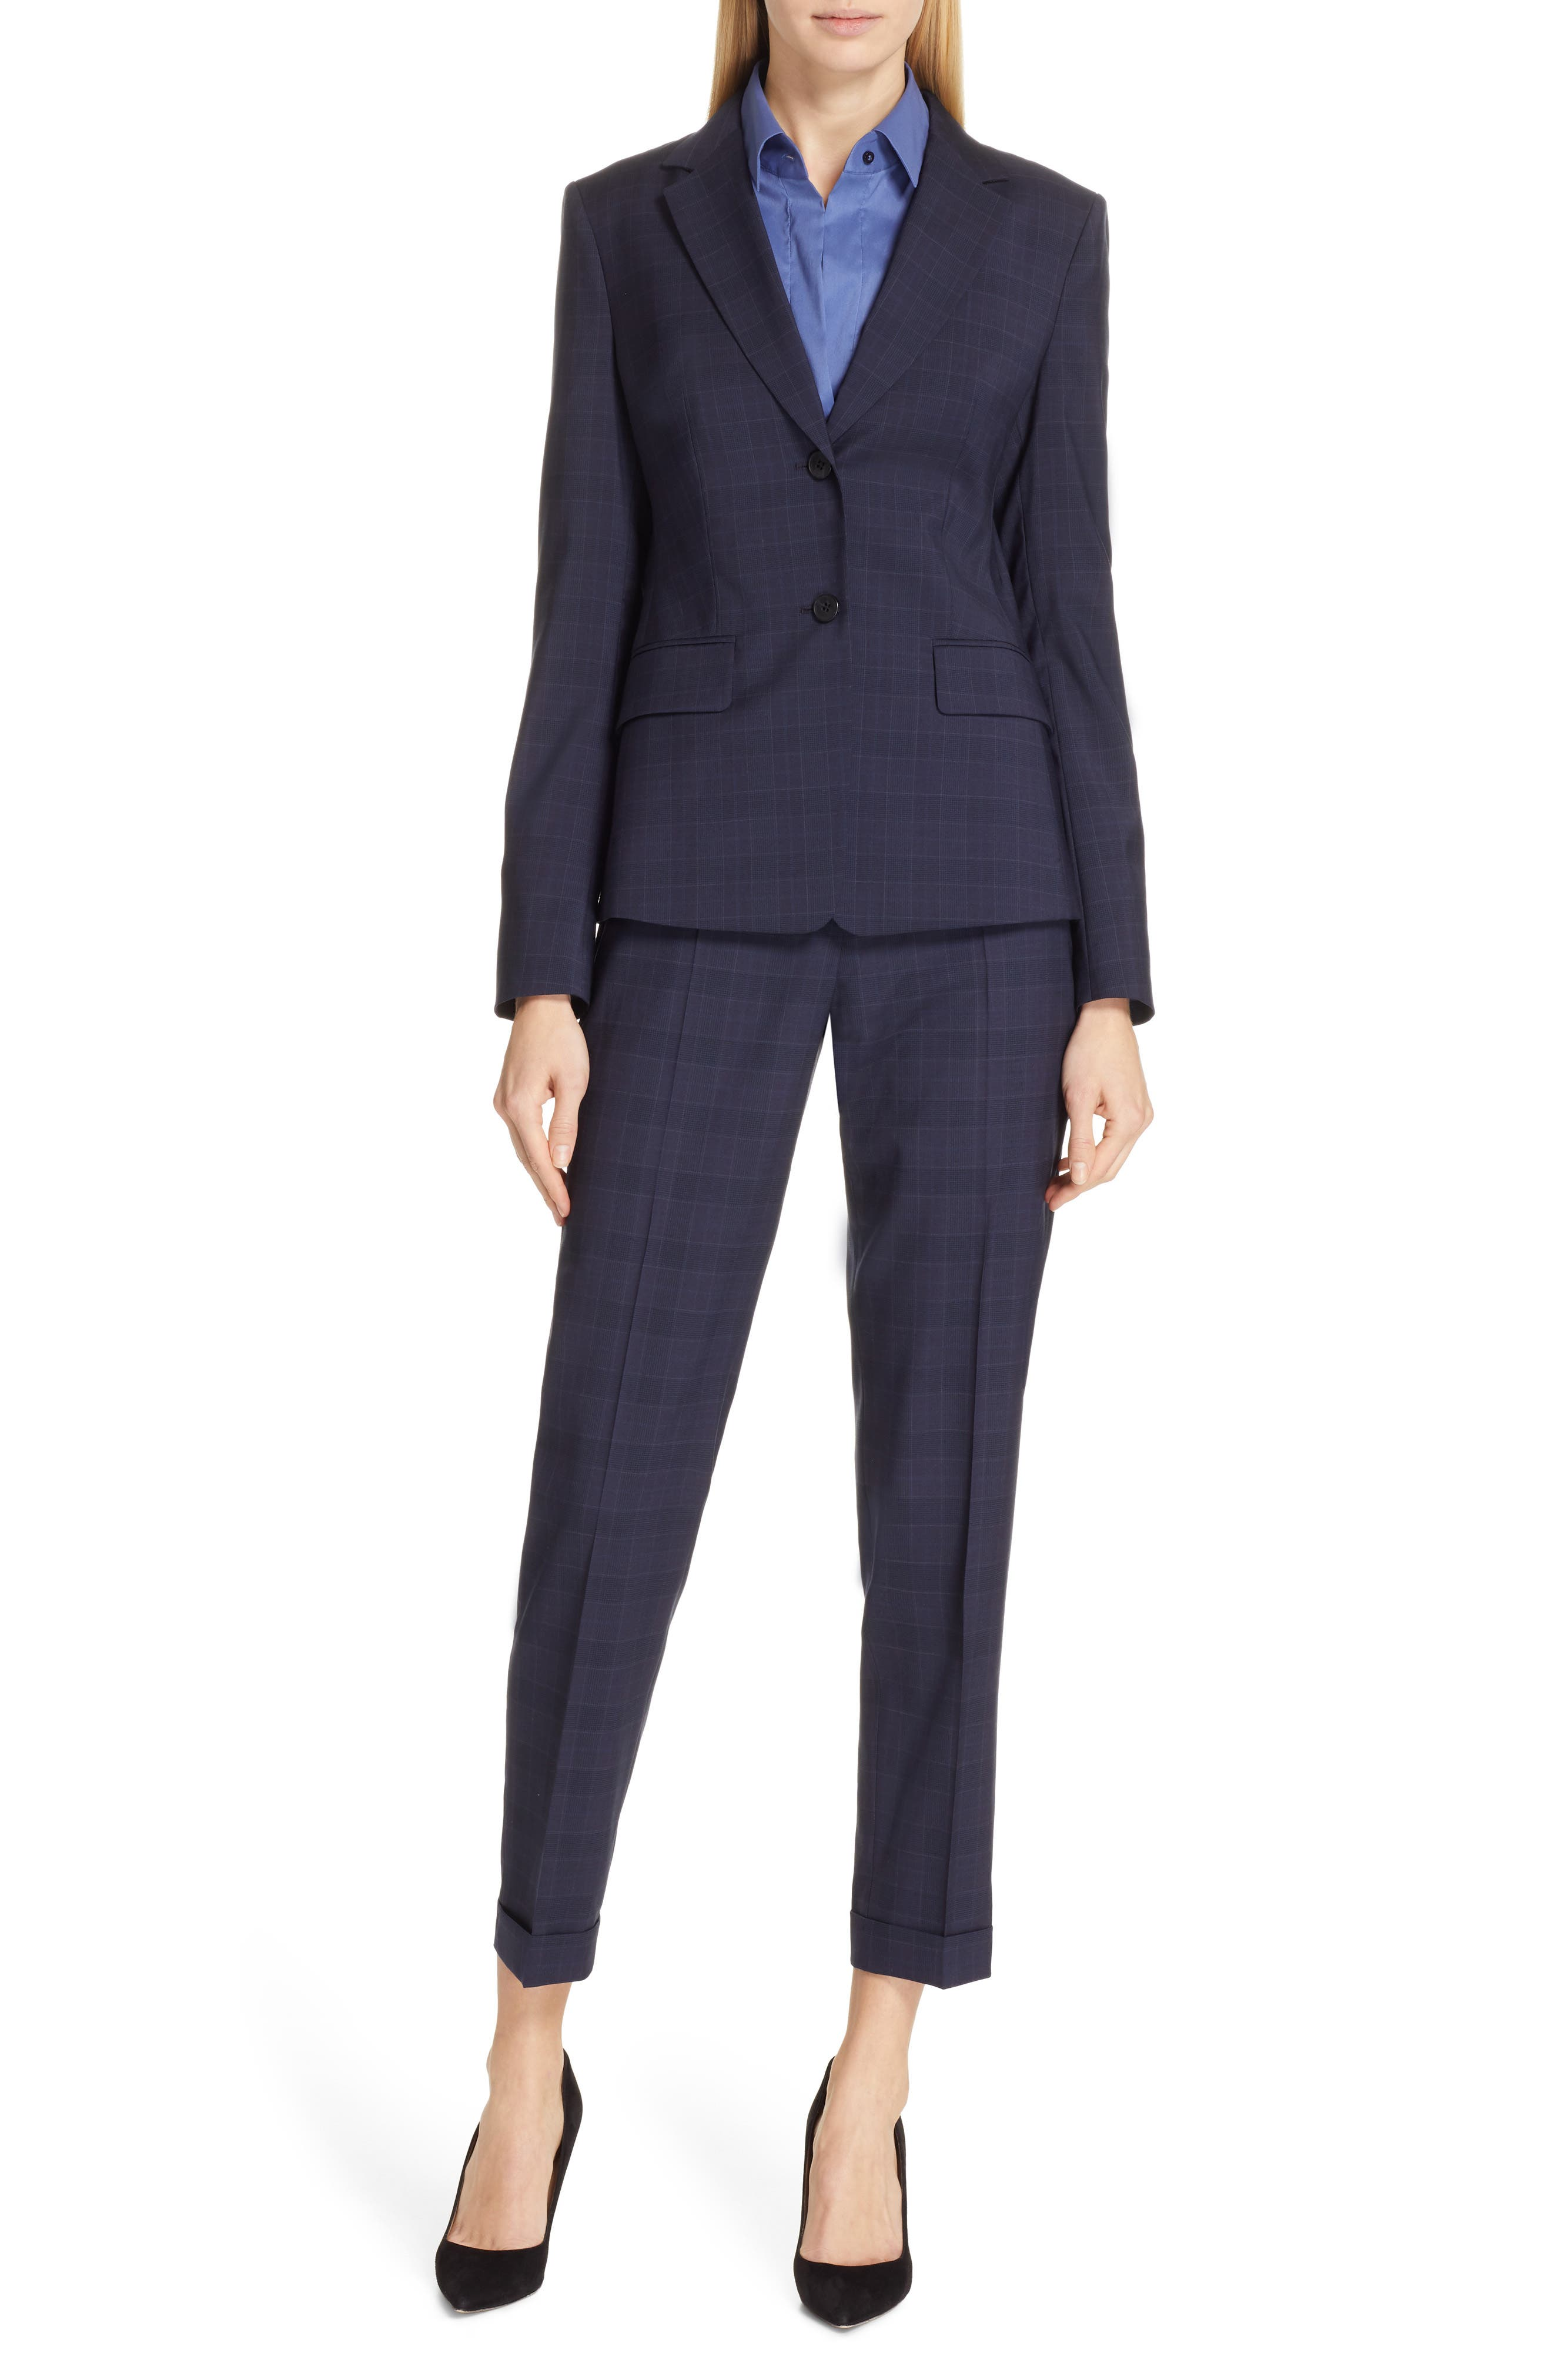 Tocanes Modern Check Wool Ankle Trousers,                             Alternate thumbnail 8, color,                             DARK NAVY FANTASY